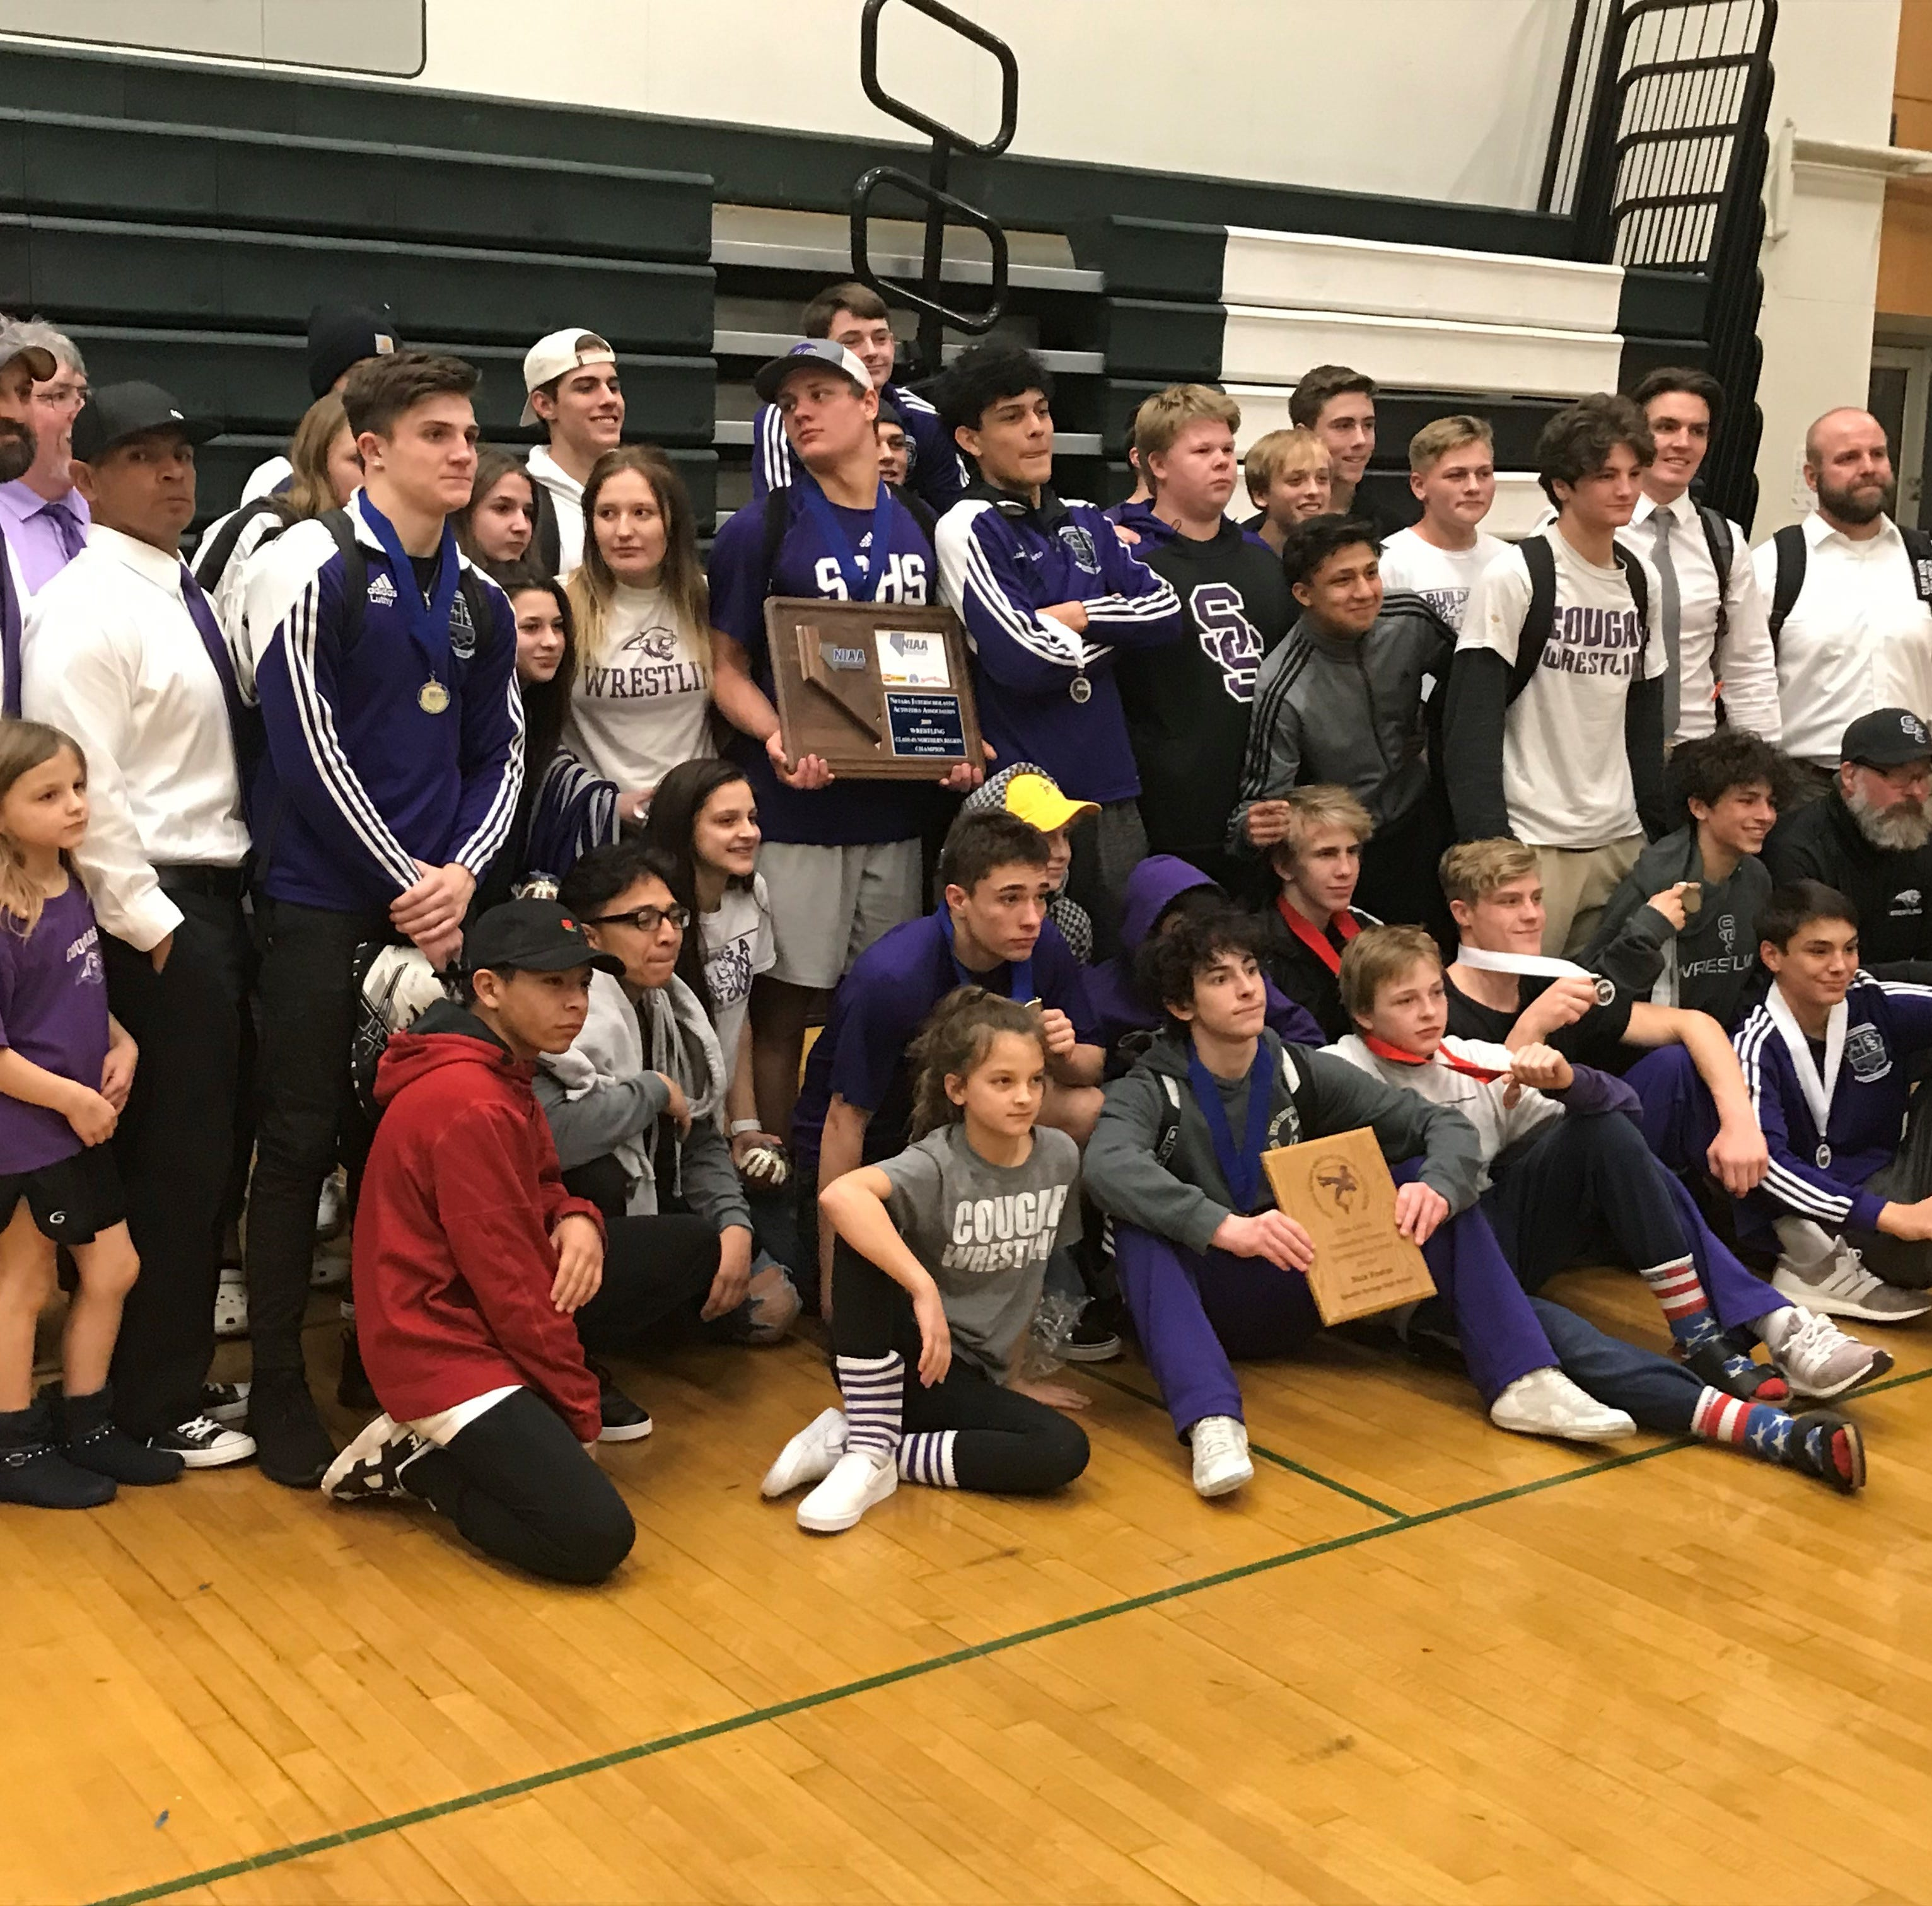 Spanish Springs wins 4A state wrestling championship; Green Valley second